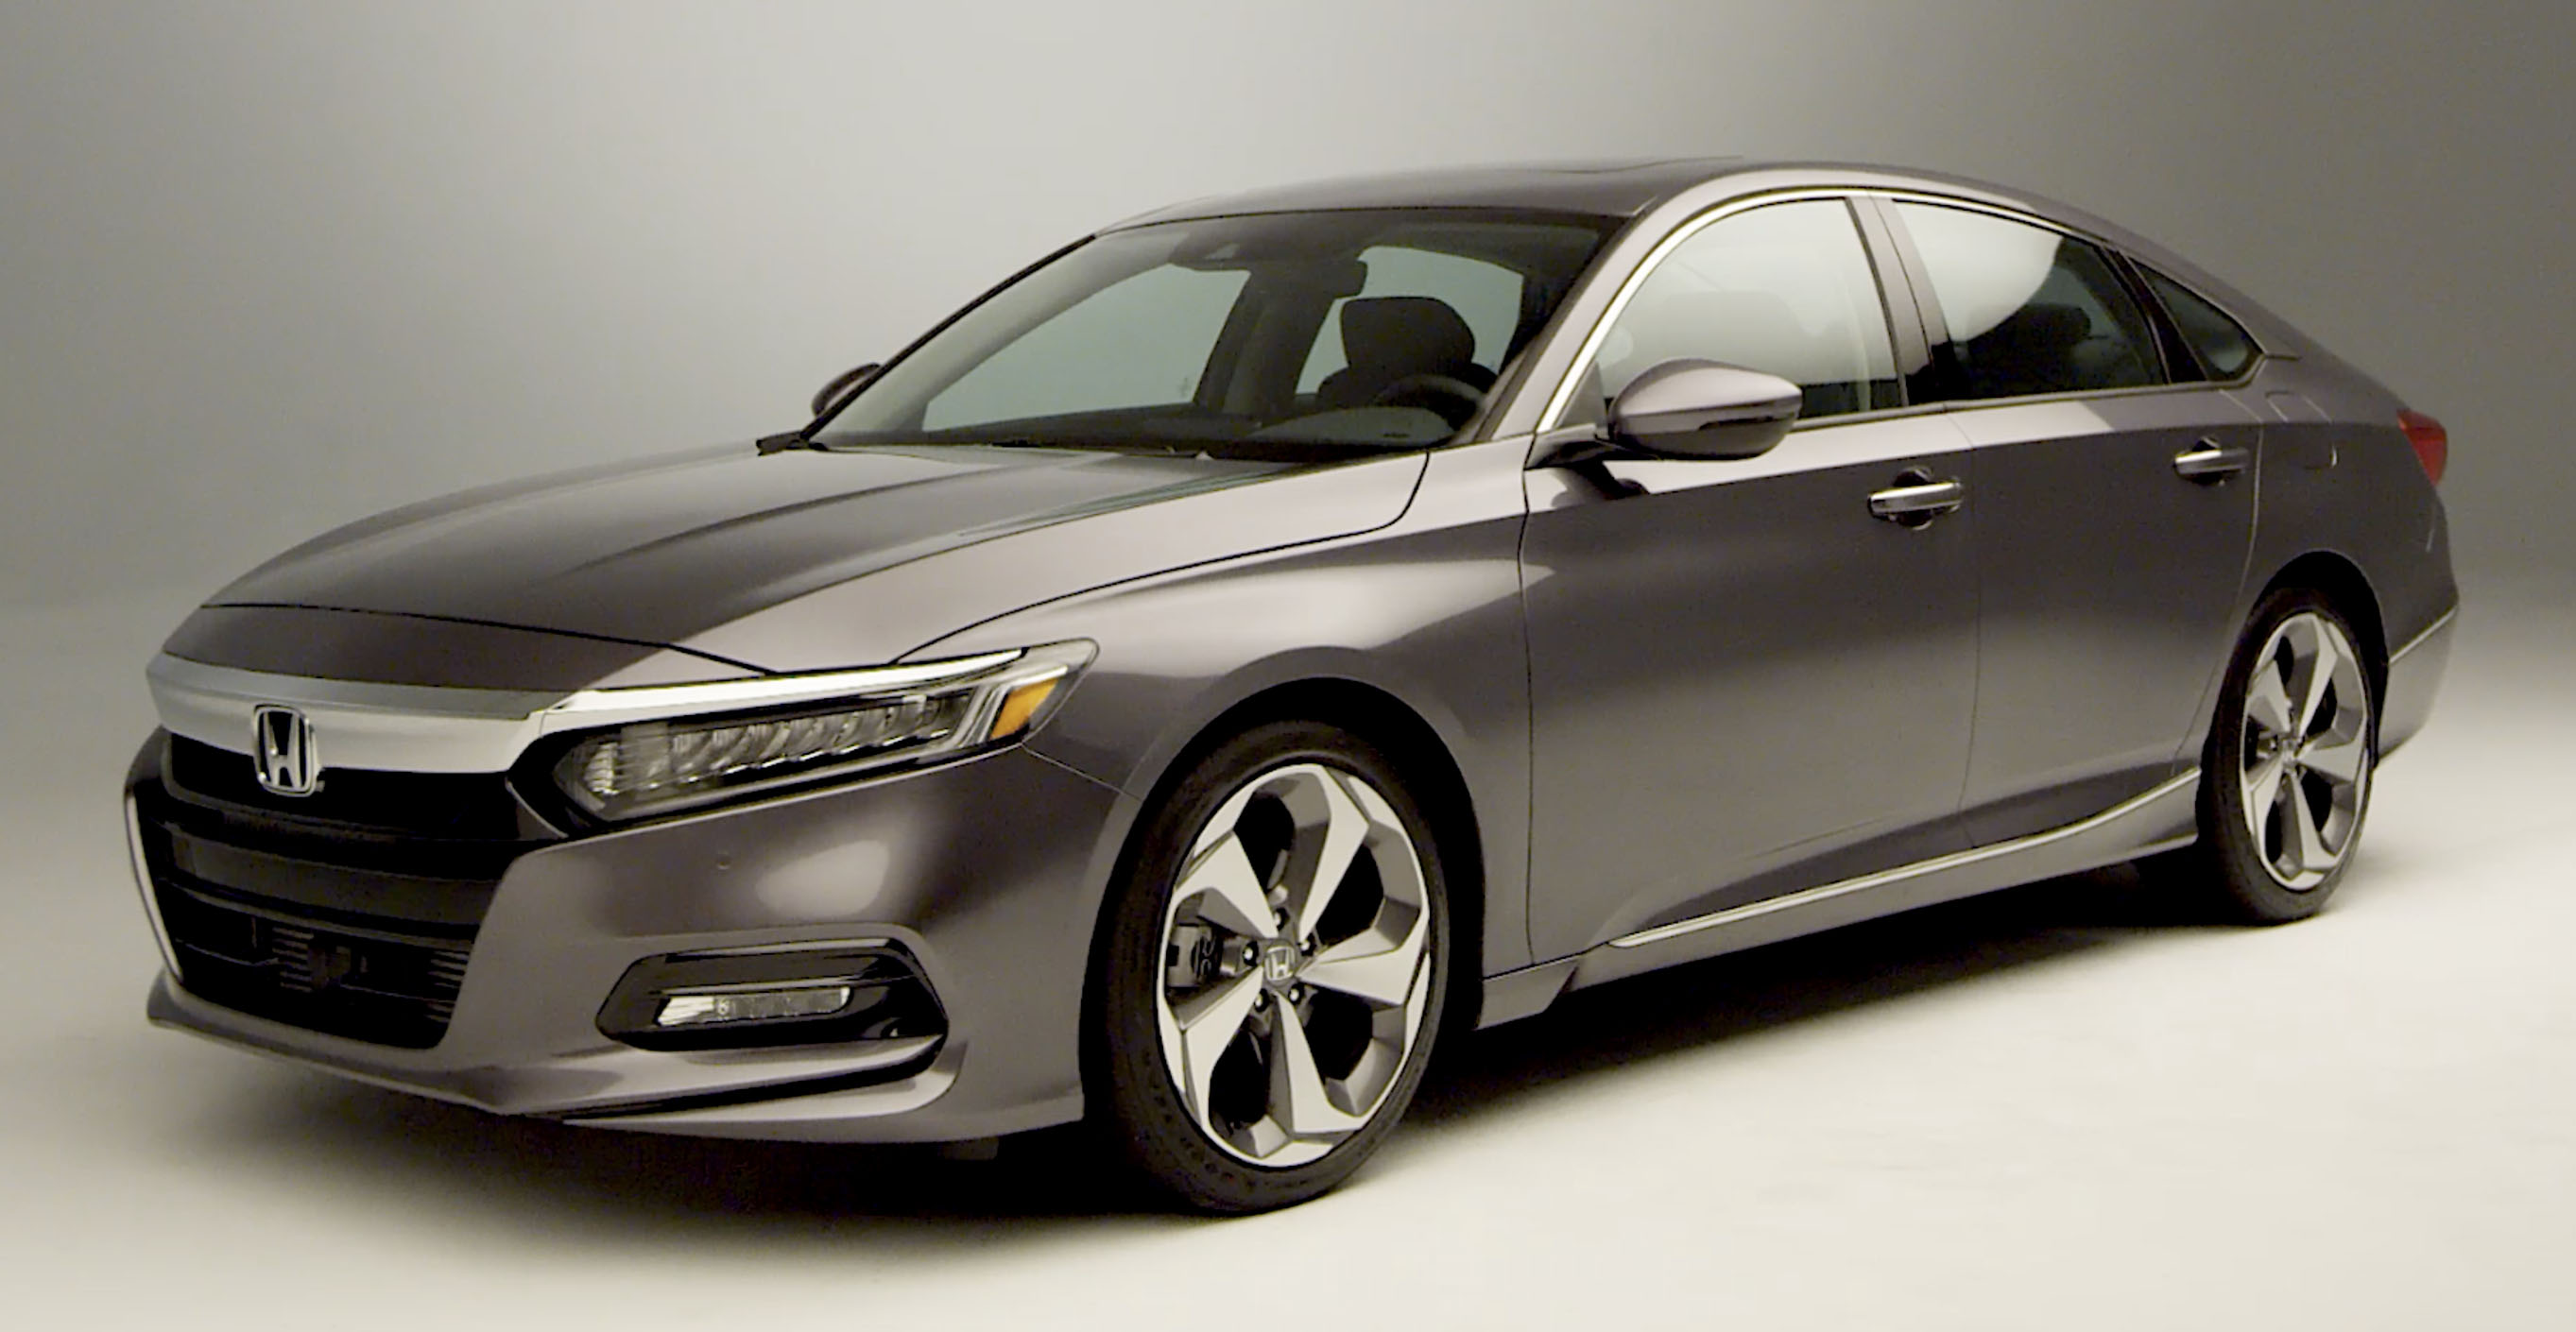 Honda Accord Exl Used Car Price In India